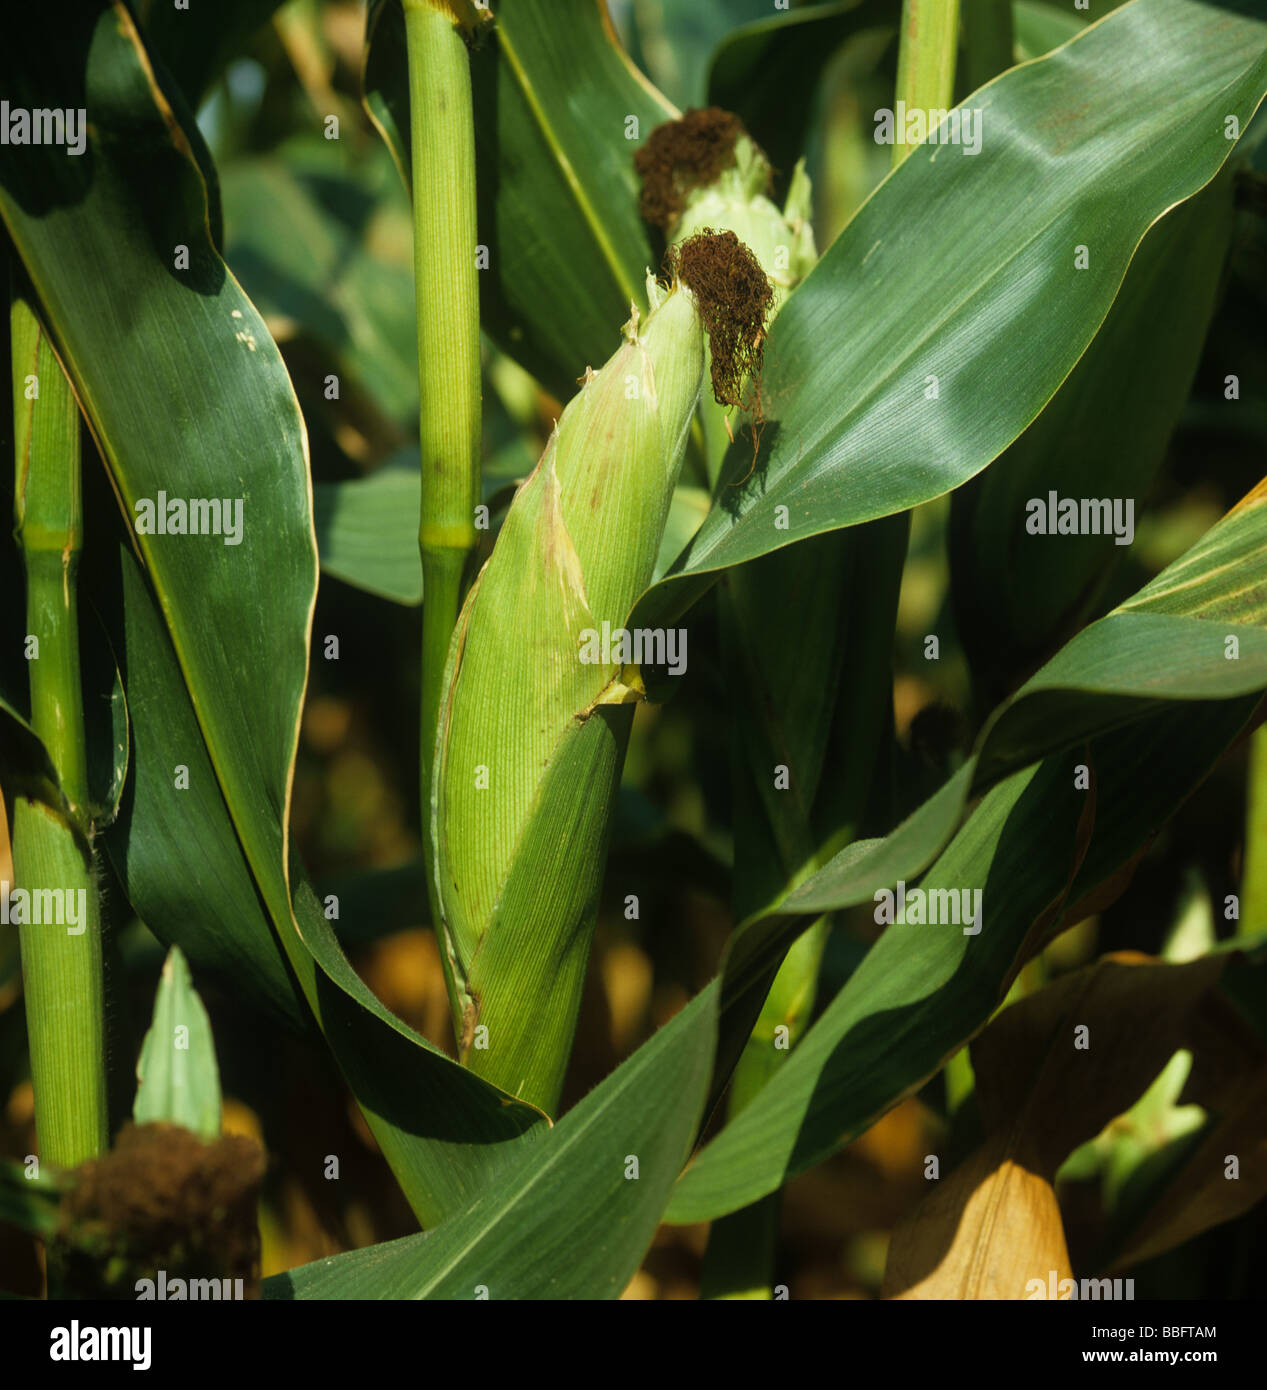 Mature maize cob and fertilized female receptors on the crop plant - Stock Image